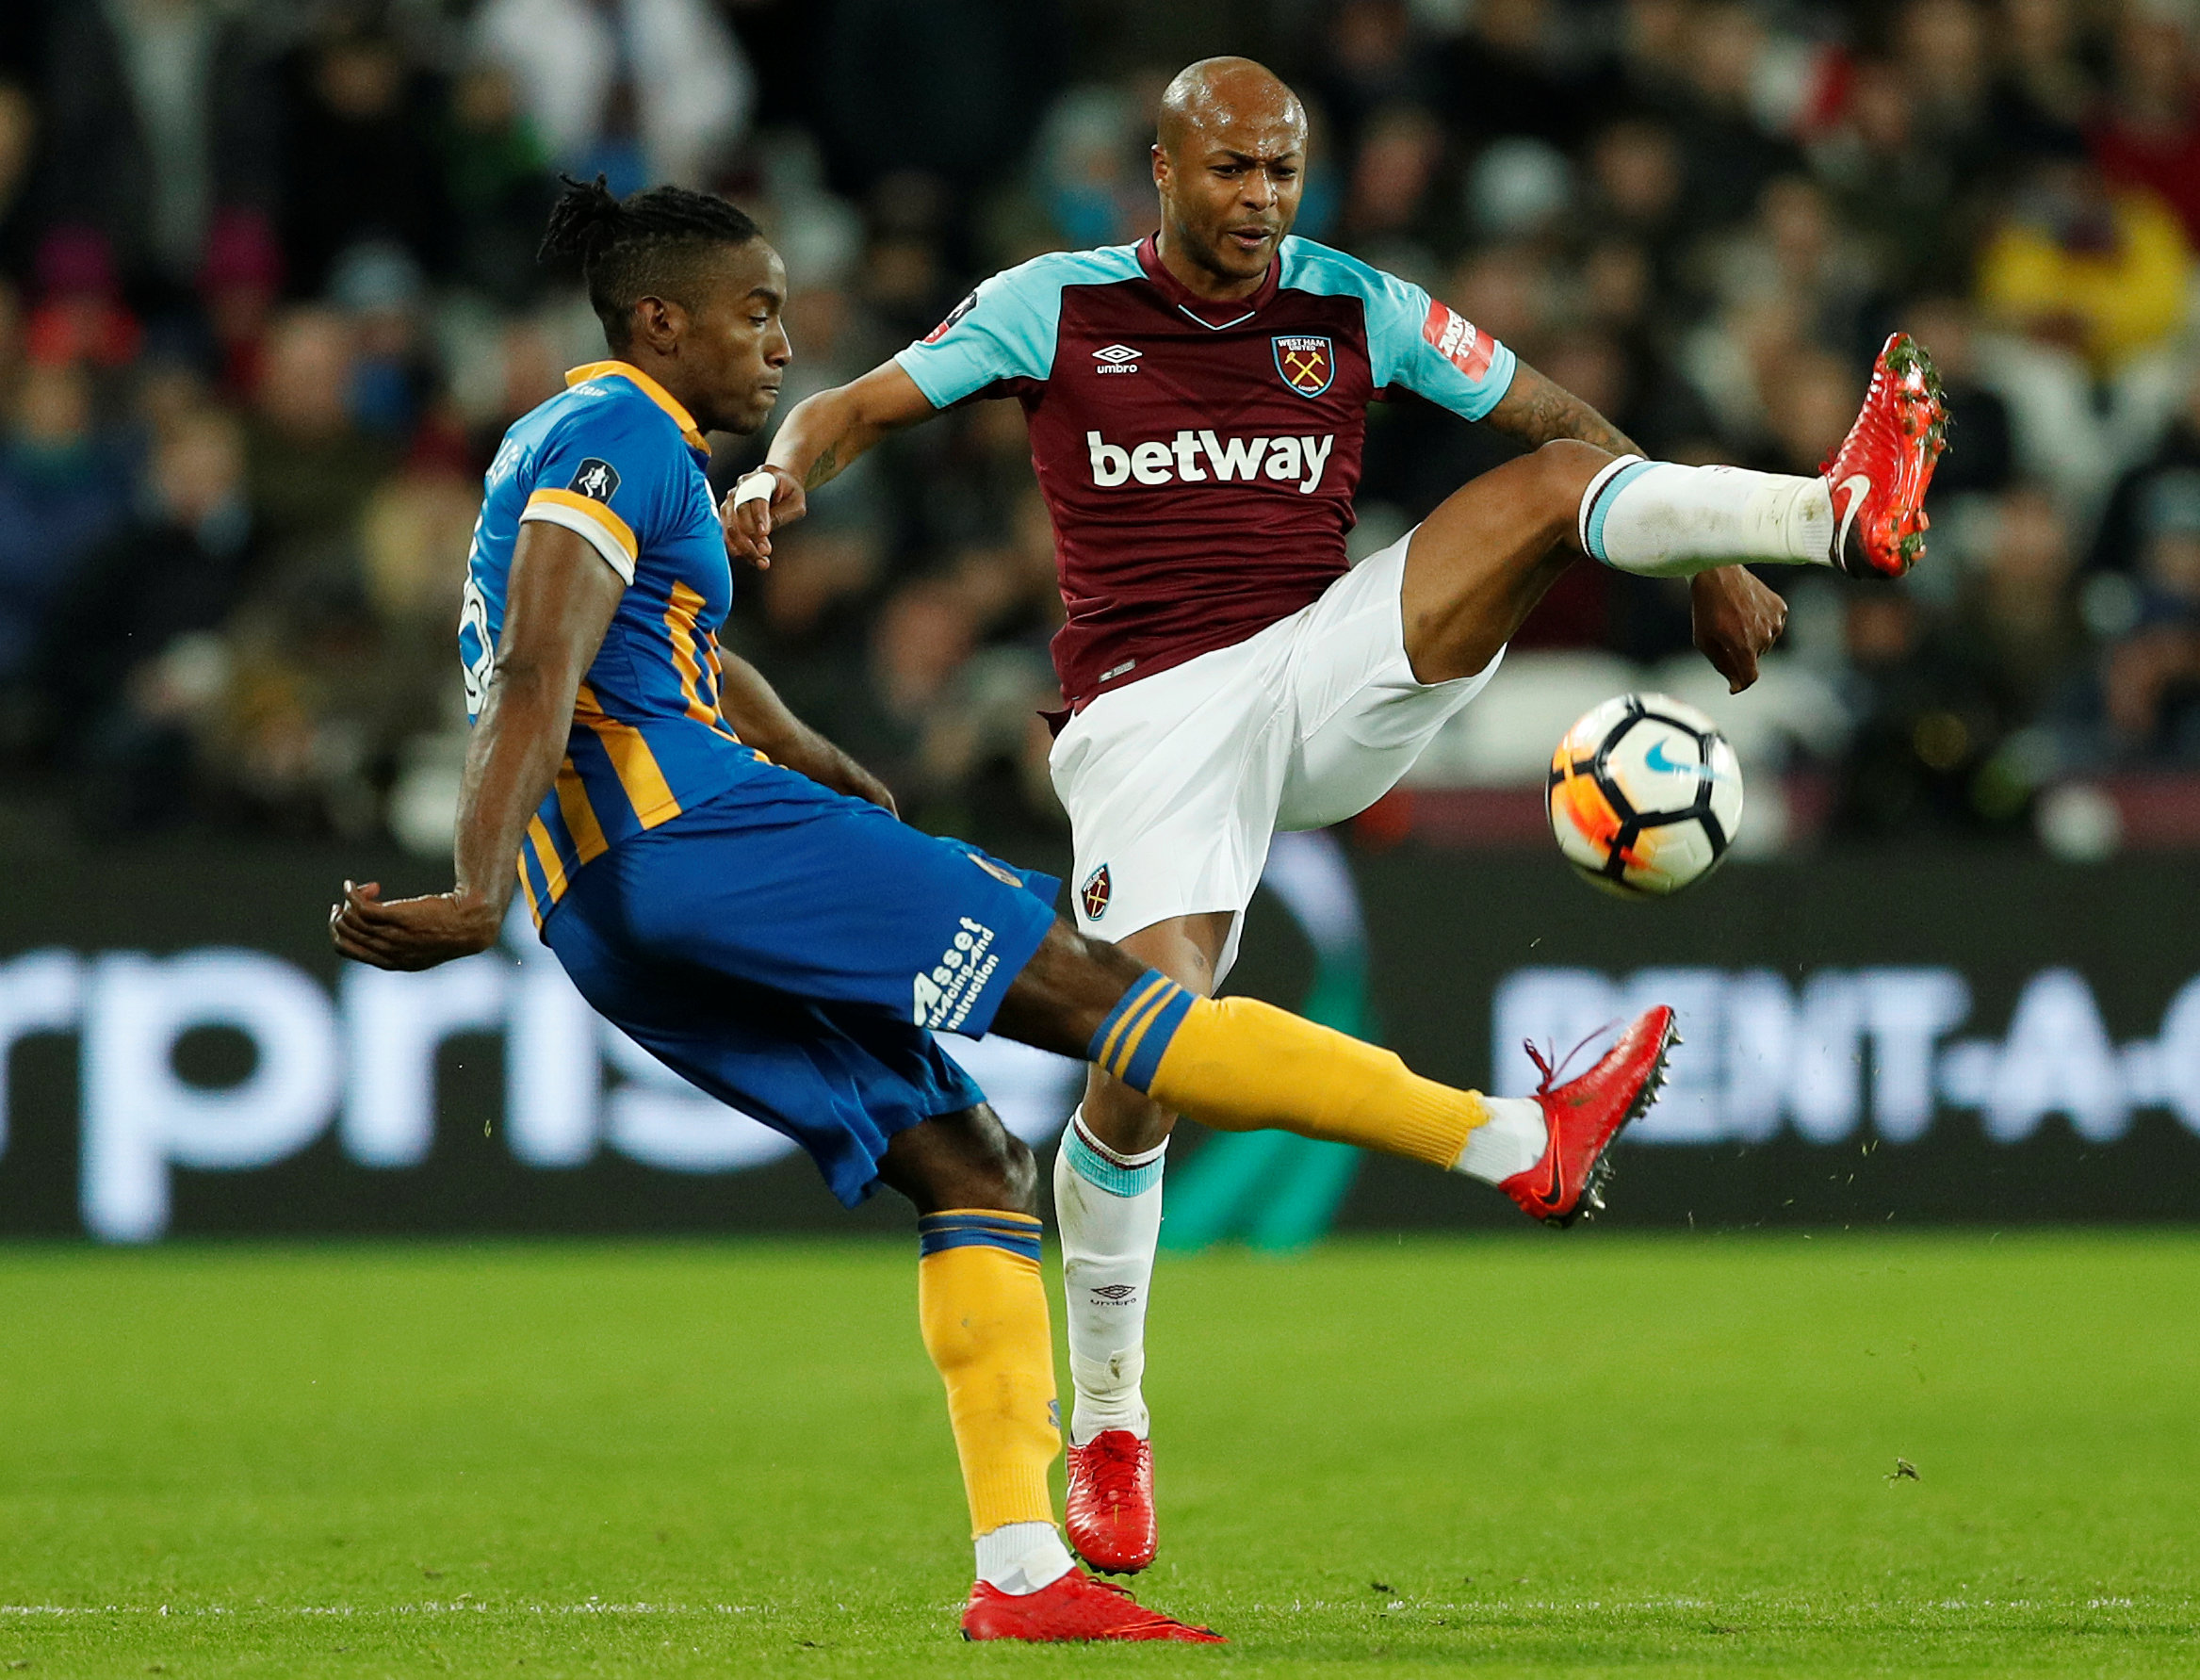 Andre Ayew left West Ham on deadline day to return to Swansea. Picture: Action Images